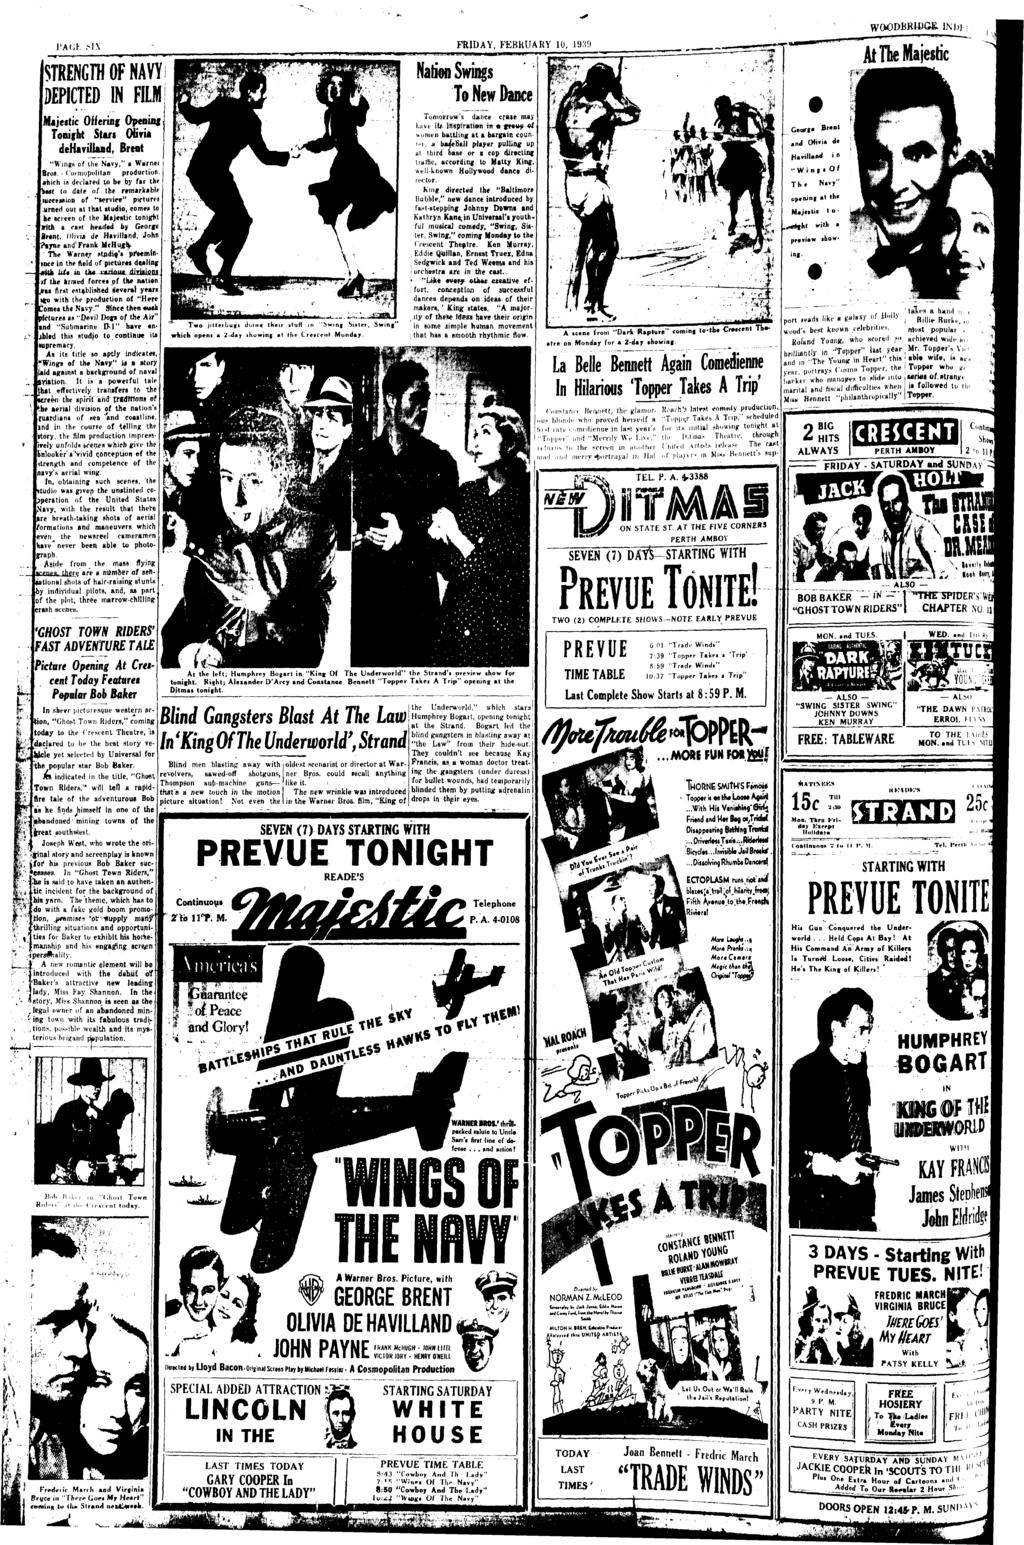 "(STRENGTH OF NAVY DEPICTED IN FILM Majestic Offering Opening Tonifht Start (Him I dehavilland, Brent I ""Wings of the Navy,"" a Warne Bros."